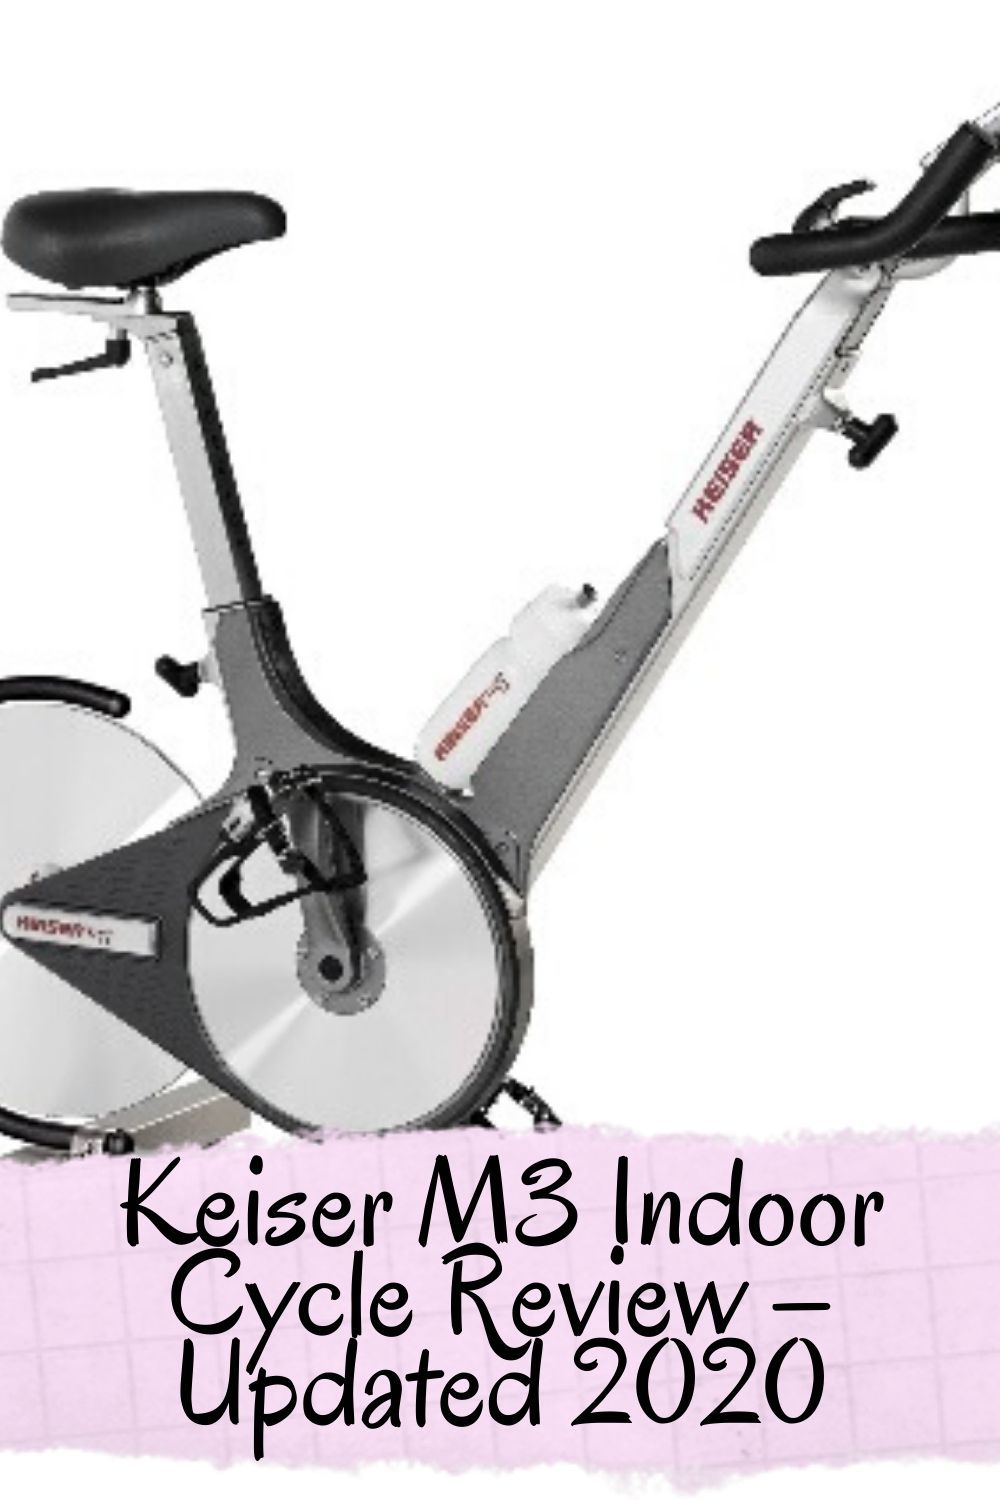 Keiser M3 Indoor Cycle Review Updated 2020 Biking Workout Spin Bike Workouts Cycling Motivation